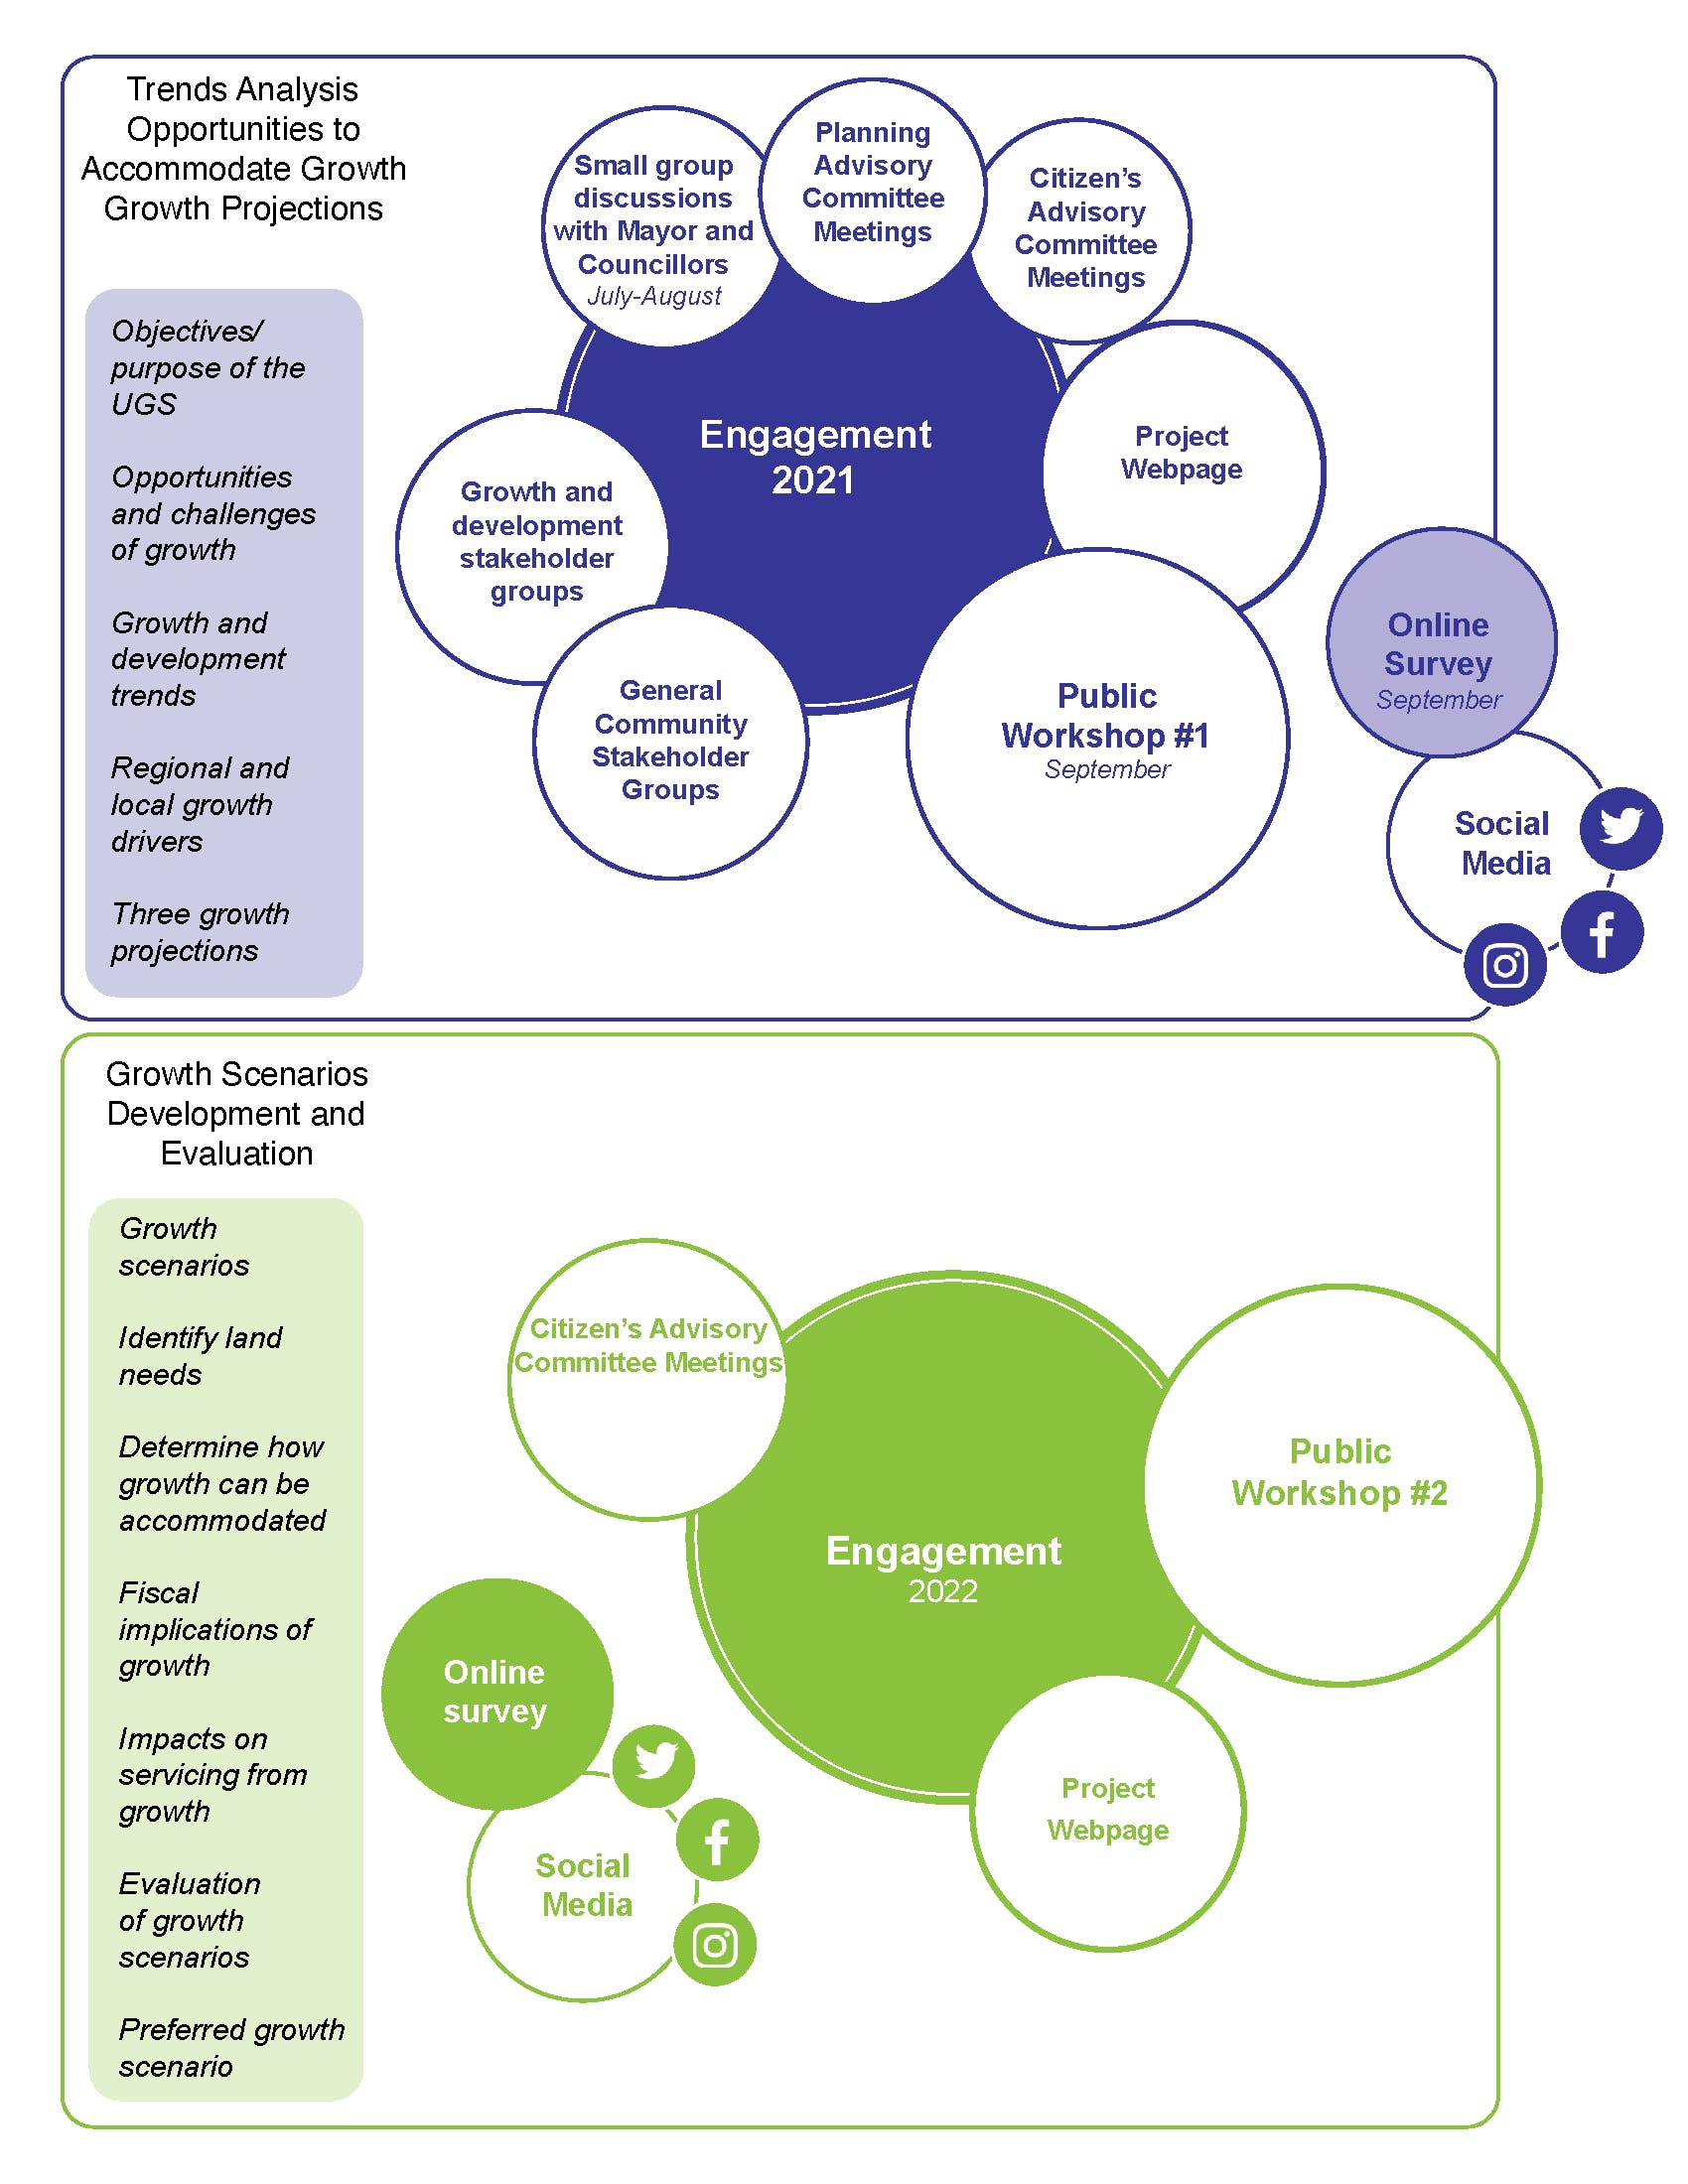 Overview of the Consultation Plan